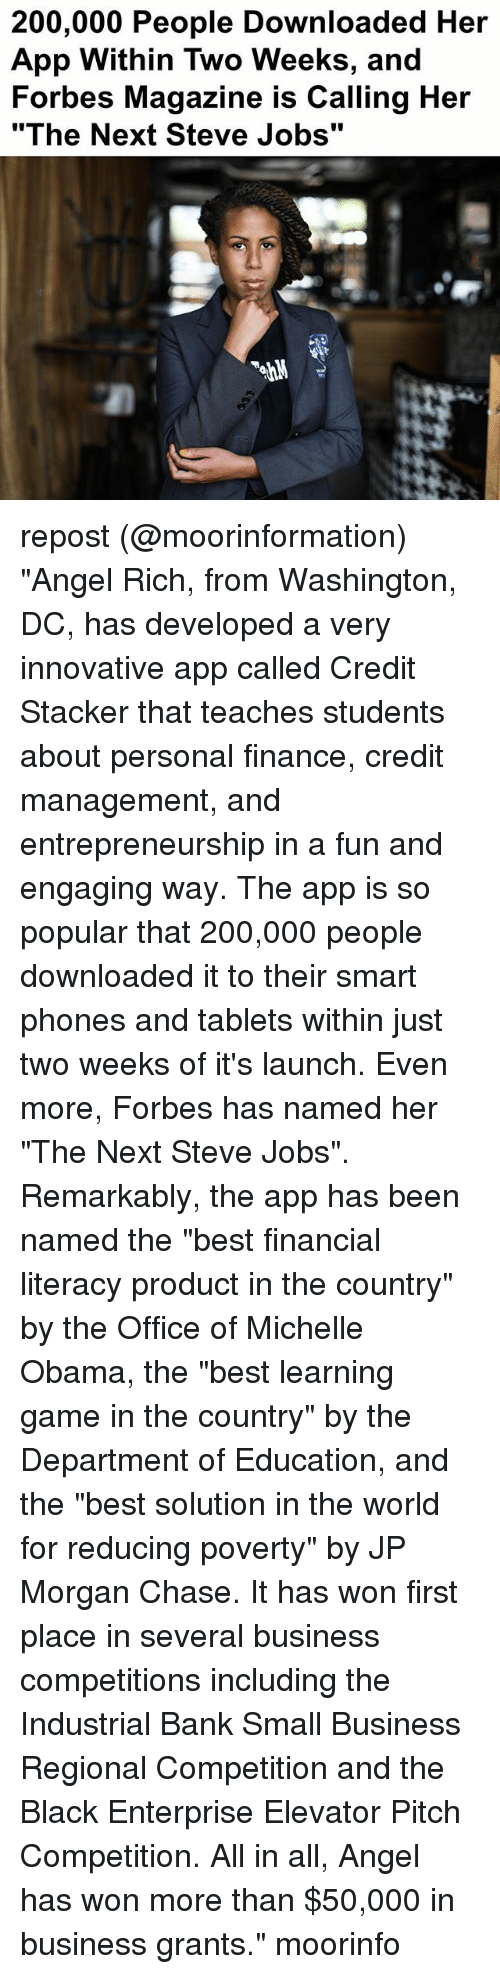 "Smalls: 200,000 People Downloaded Her  App Within Two Weeks, and  Forbes Magazine is Calling Her  ""The Next Steve Jobs"" repost (@moorinformation) ""Angel Rich, from Washington, DC, has developed a very innovative app called Credit Stacker that teaches students about personal finance, credit management, and entrepreneurship in a fun and engaging way. The app is so popular that 200,000 people downloaded it to their smart phones and tablets within just two weeks of it's launch. Even more, Forbes has named her ""The Next Steve Jobs"". Remarkably, the app has been named the ""best financial literacy product in the country"" by the Office of Michelle Obama, the ""best learning game in the country"" by the Department of Education, and the ""best solution in the world for reducing poverty"" by JP Morgan Chase. It has won first place in several business competitions including the Industrial Bank Small Business Regional Competition and the Black Enterprise Elevator Pitch Competition. All in all, Angel has won more than $50,000 in business grants."" moorinfo"